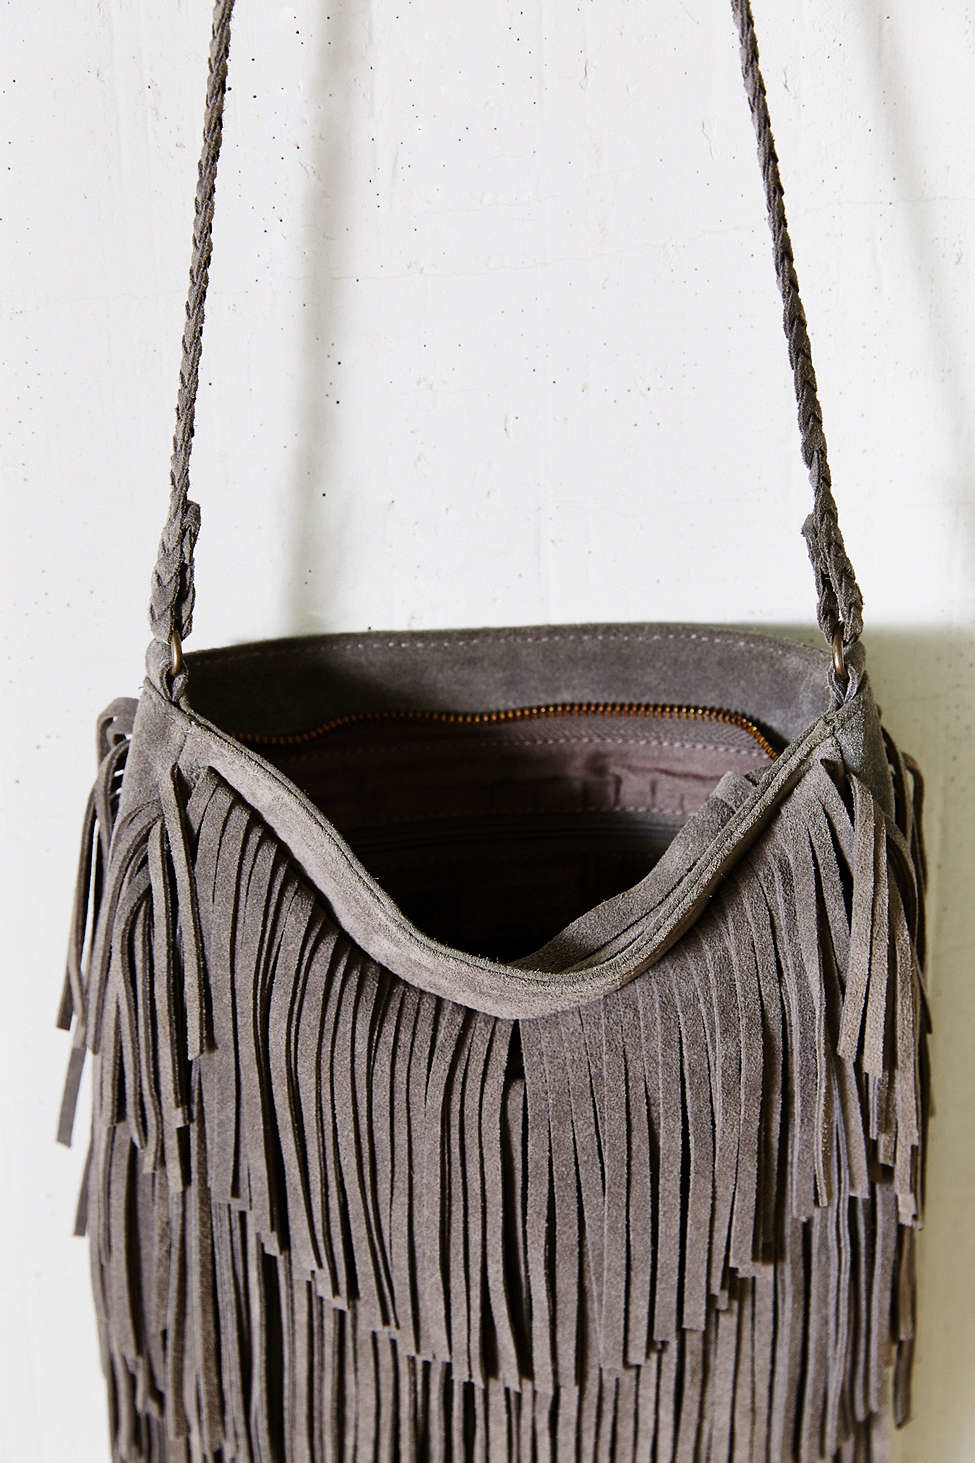 Lyst - Ecote Suede Layered Fringe Crossbody Bag in Gray 6270d9d1d1bca